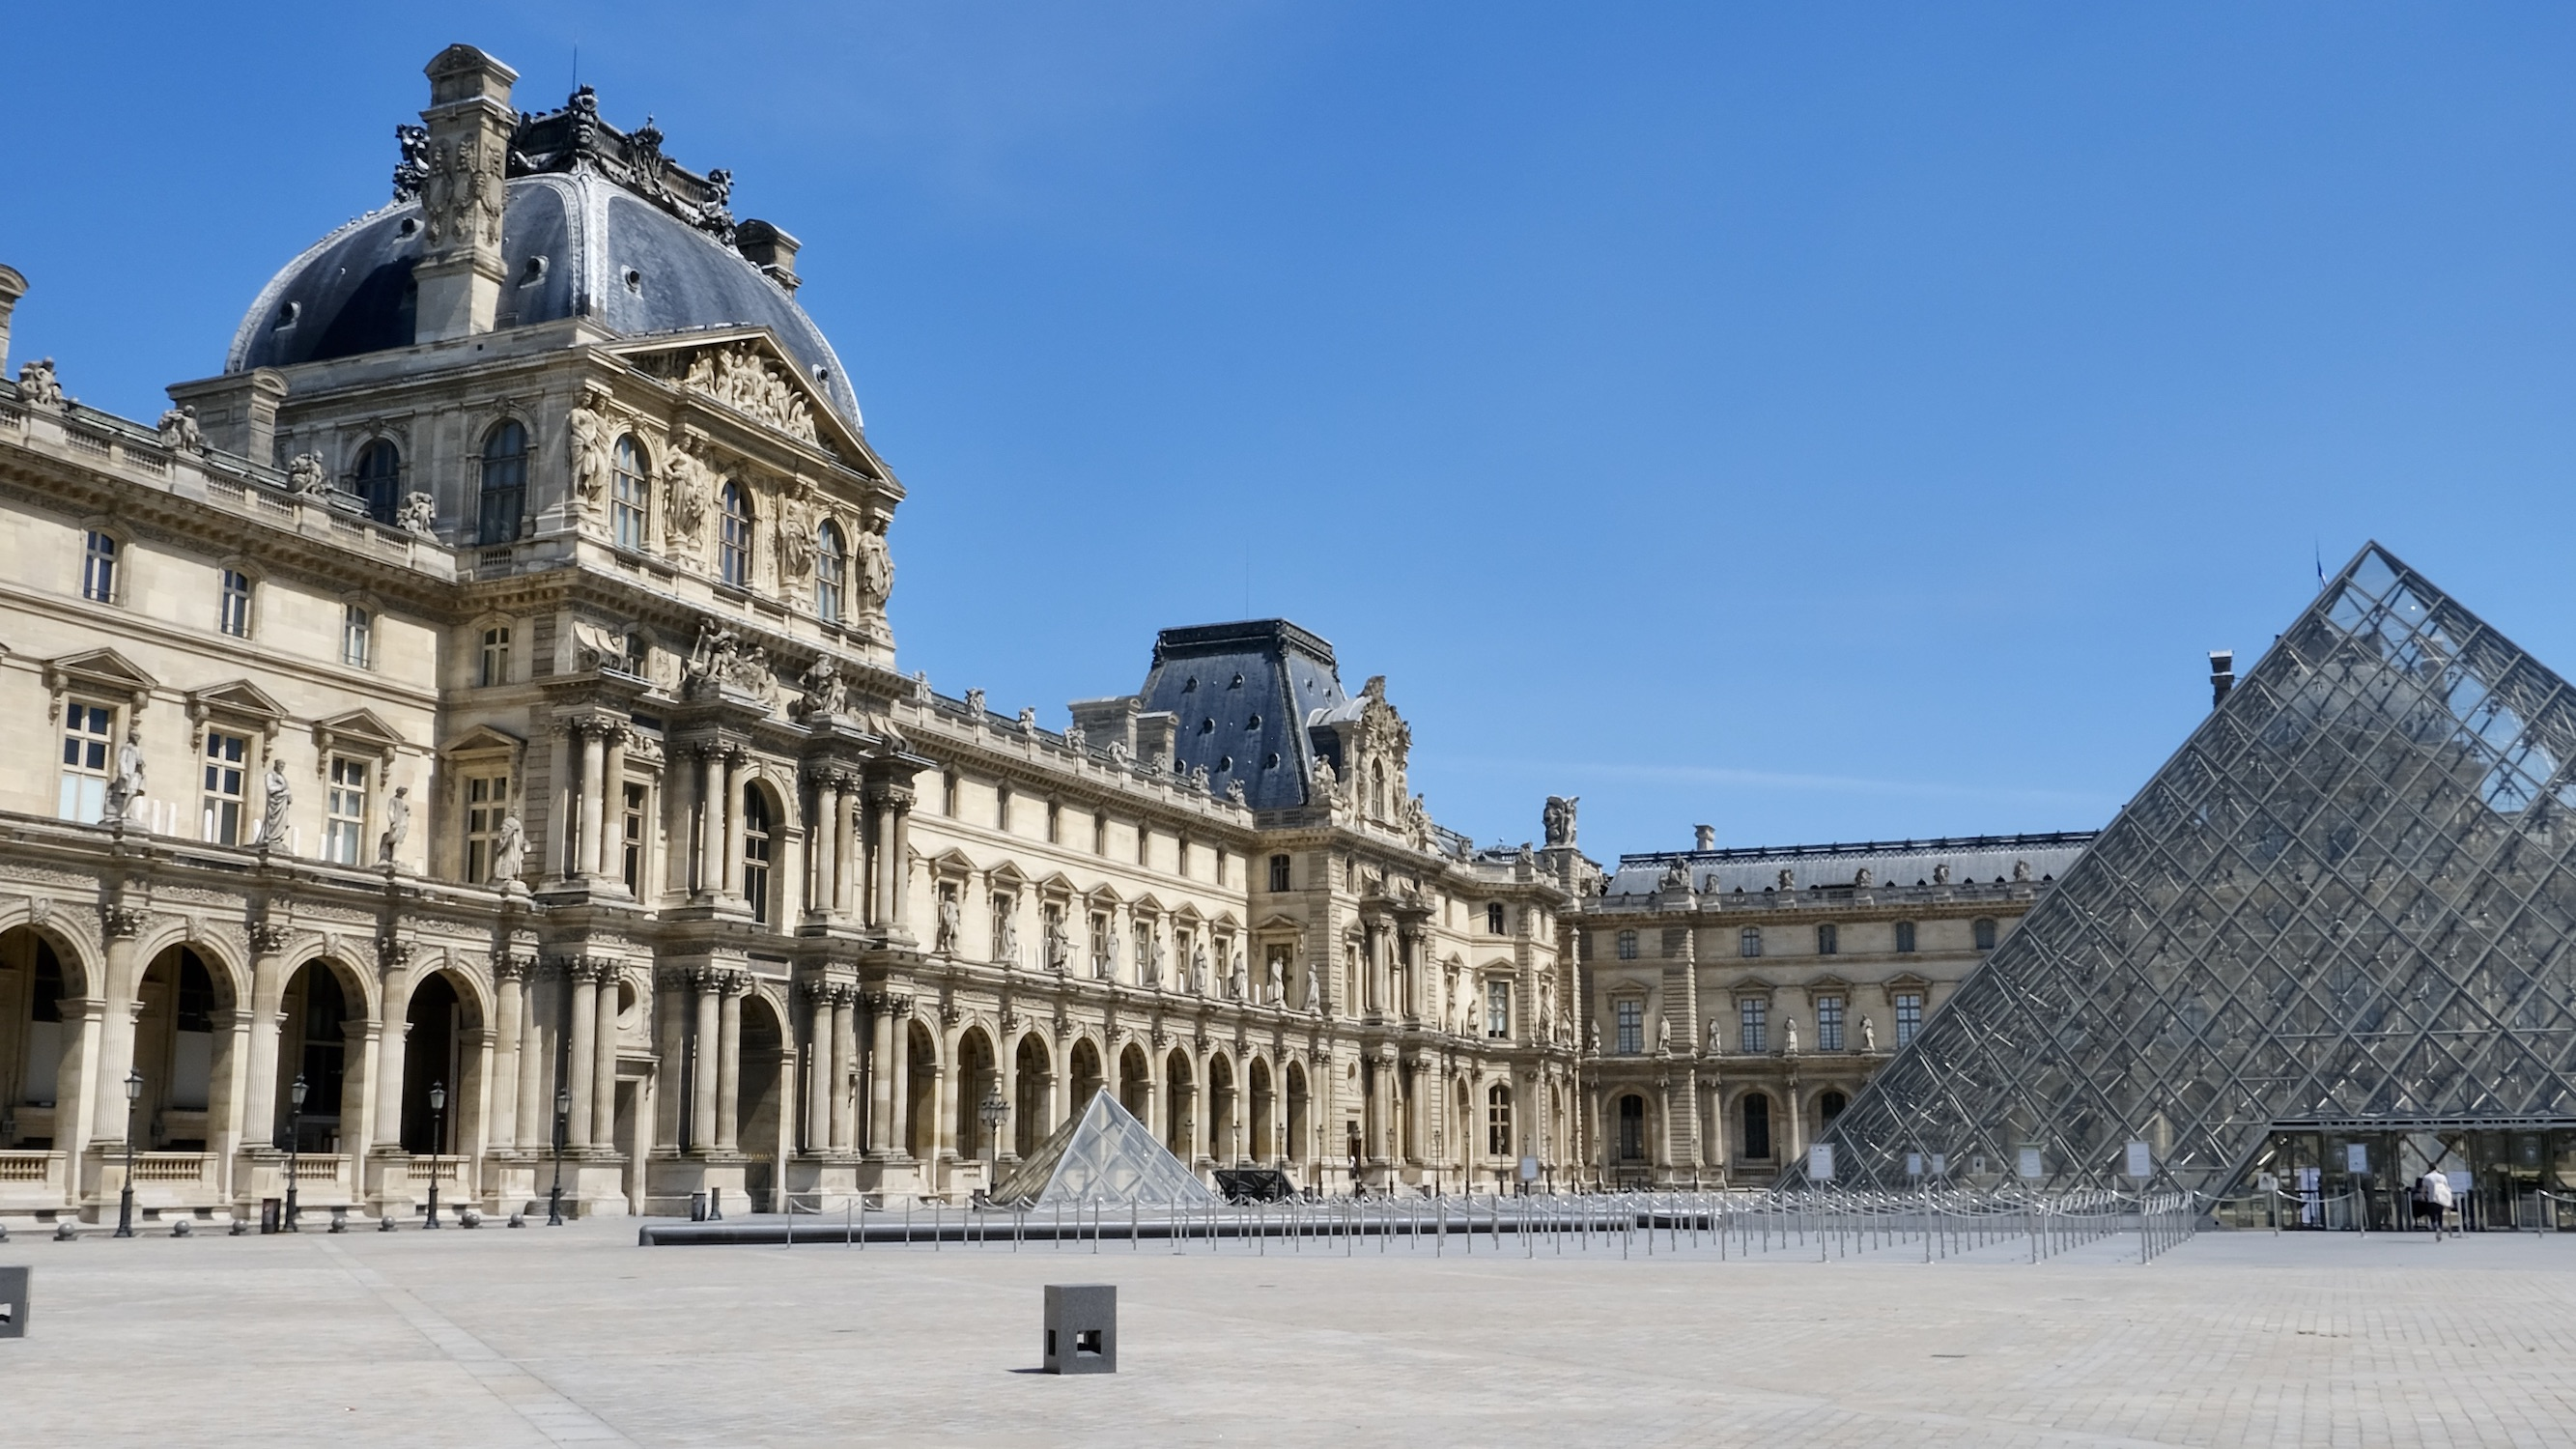 A walk around the Musée du Louvre